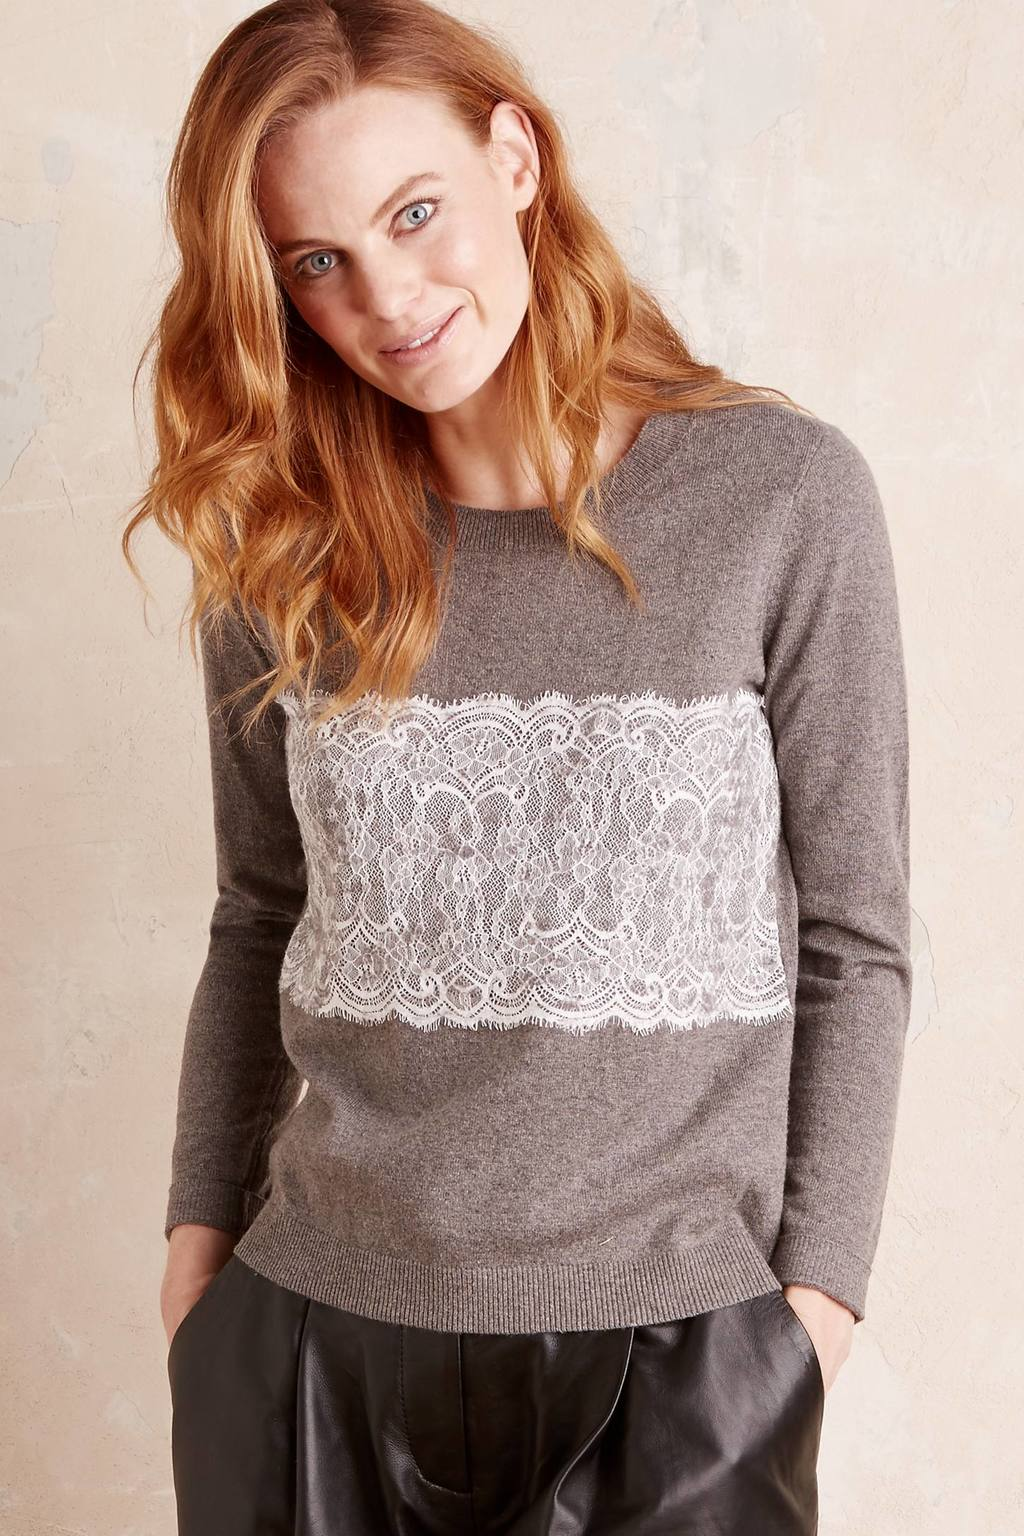 Tilly Laced Jumper - neckline: round neck; pattern: plain; style: standard; predominant colour: taupe; occasions: casual, creative work; length: standard; fibres: cotton - mix; fit: standard fit; sleeve length: long sleeve; sleeve style: standard; texture group: knits/crochet; pattern type: knitted - fine stitch; embellishment: lace; season: a/w 2016; wardrobe: highlight